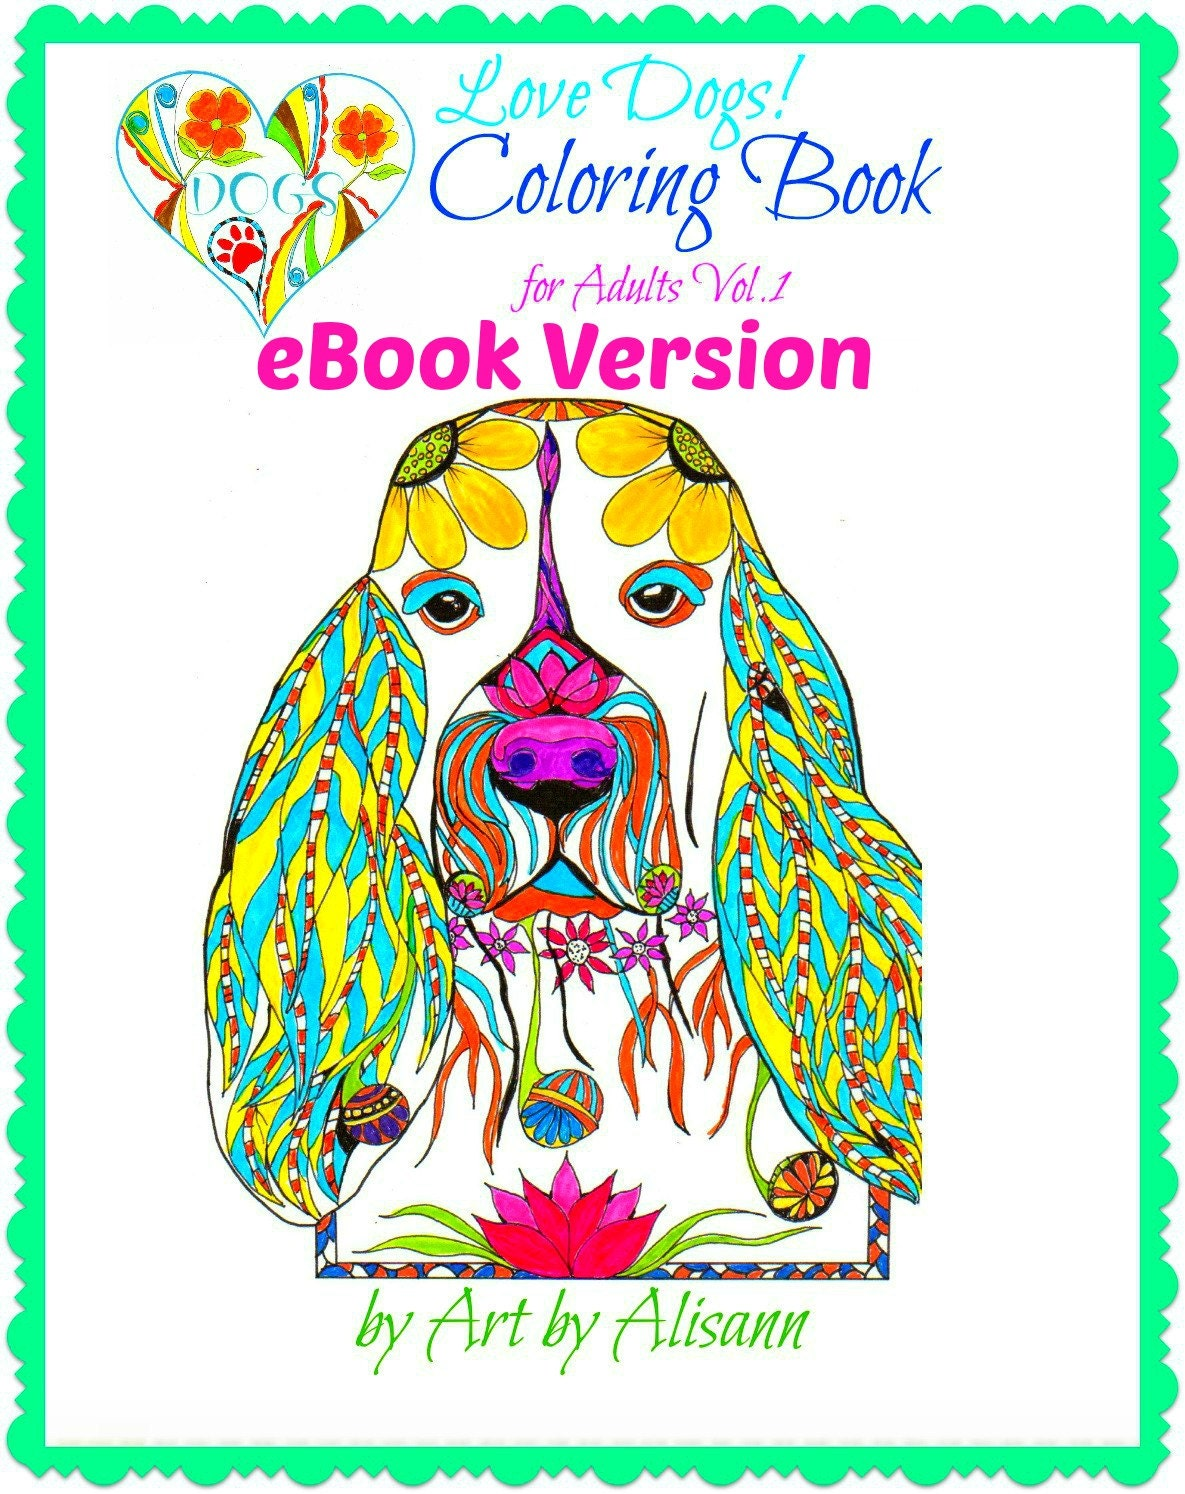 Coloring Book For Adults Ebook : eBook Love Dogs Coloring Book for Adults Vol. 1 Coloring